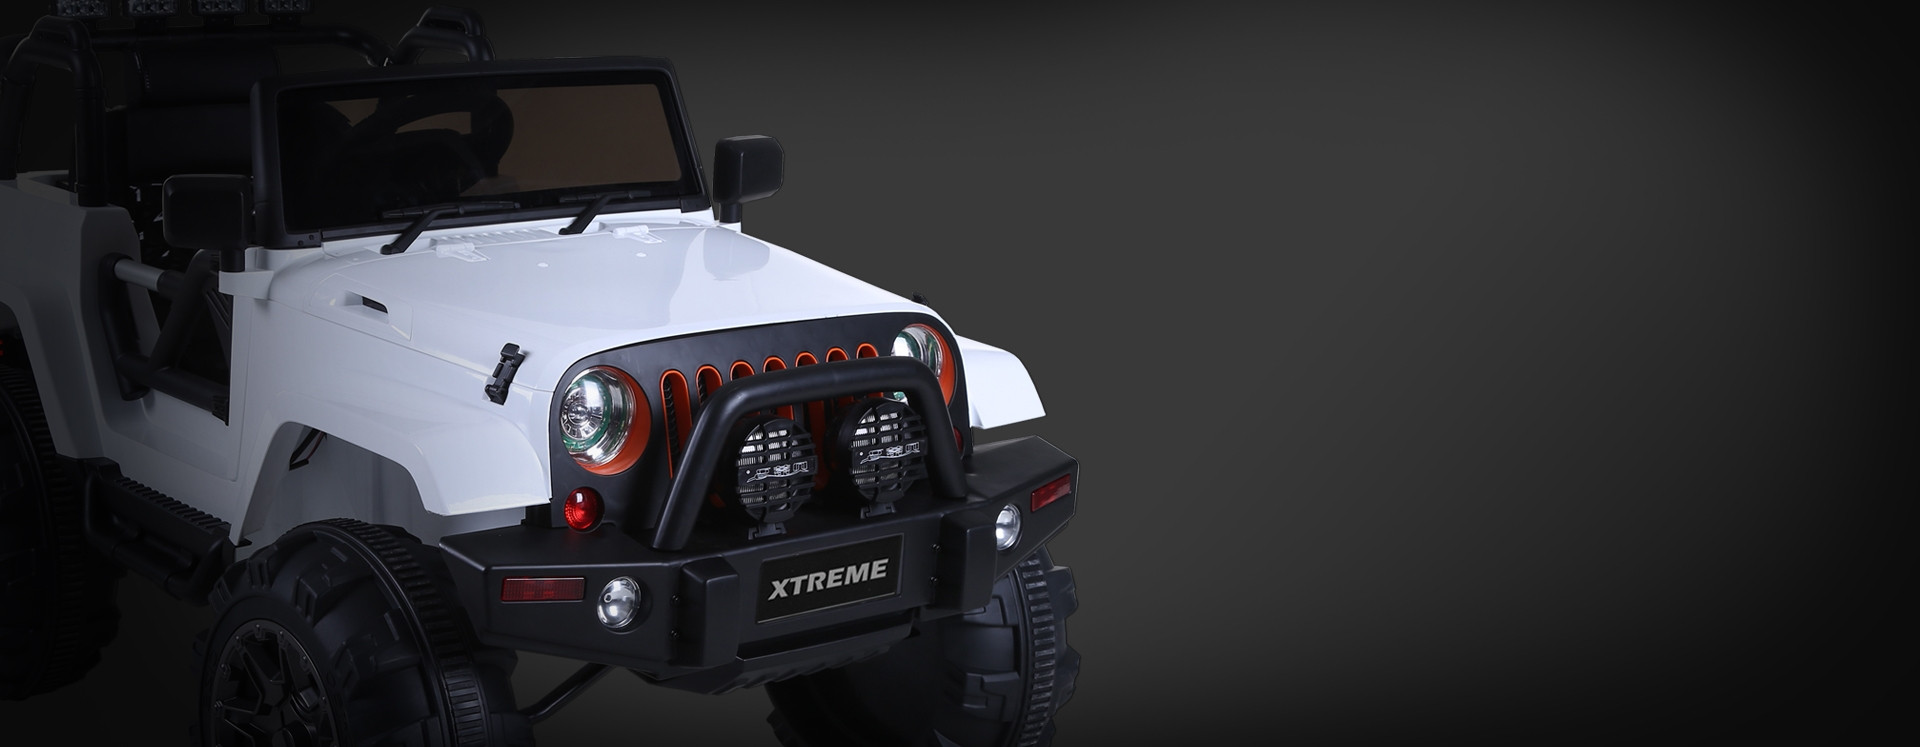 Xtreme 12v Ride on SUV Jeep With Open Doors Red